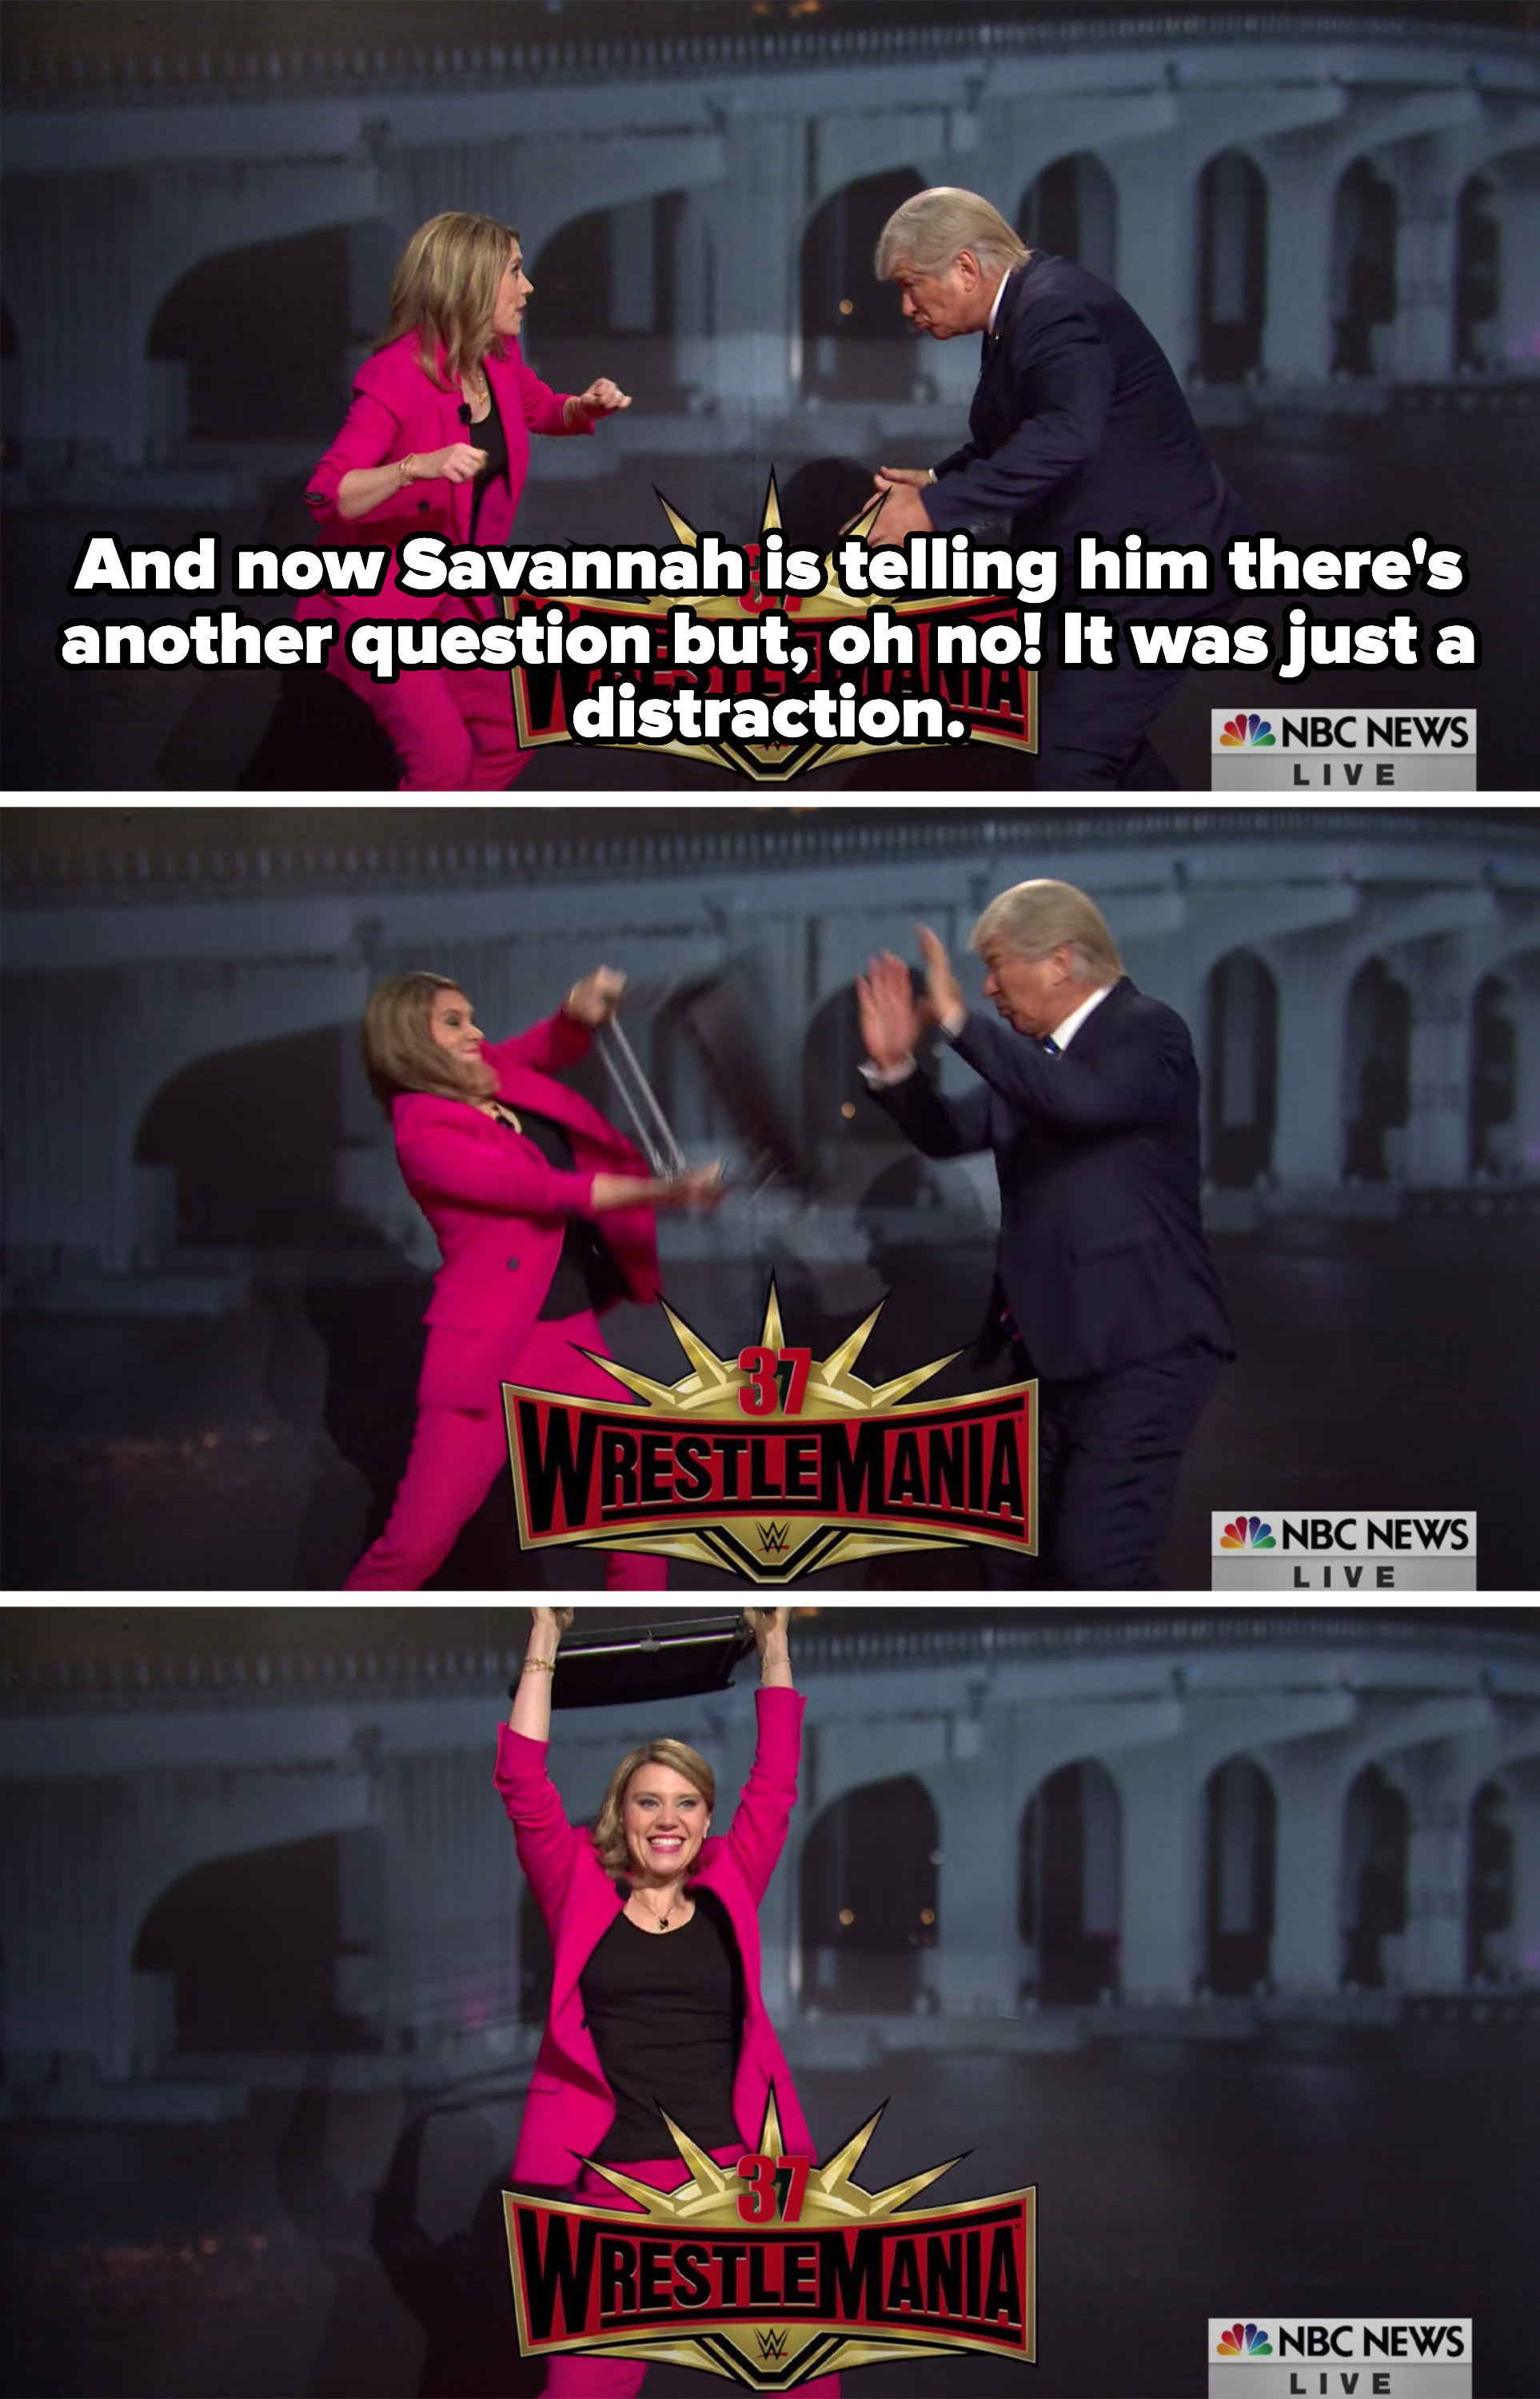 Savannah and Trump wrestling; Trump getting hit over the head with a chair